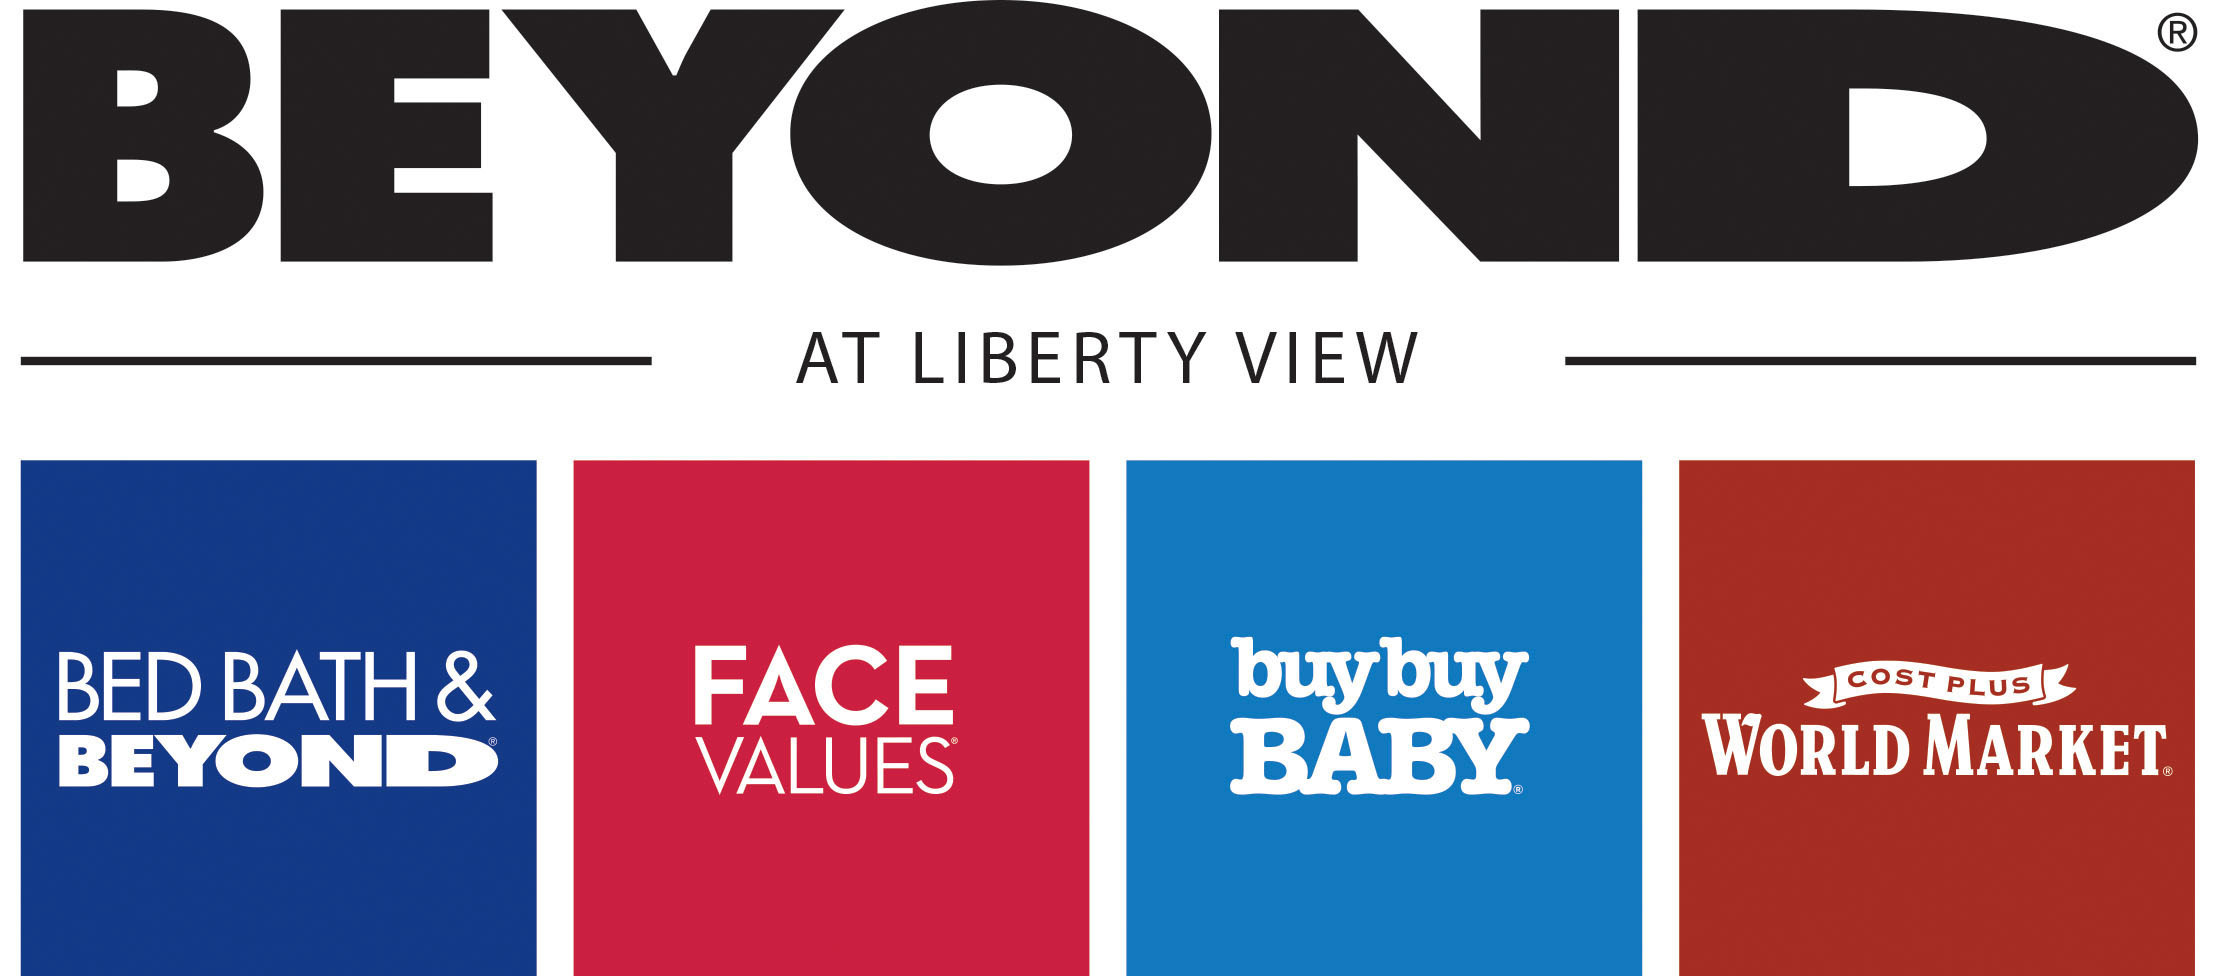 Liberty Auto Sales >> Bed Bath & Beyond Inc. Announces The Grand Opening Of BEYOND® at Liberty View